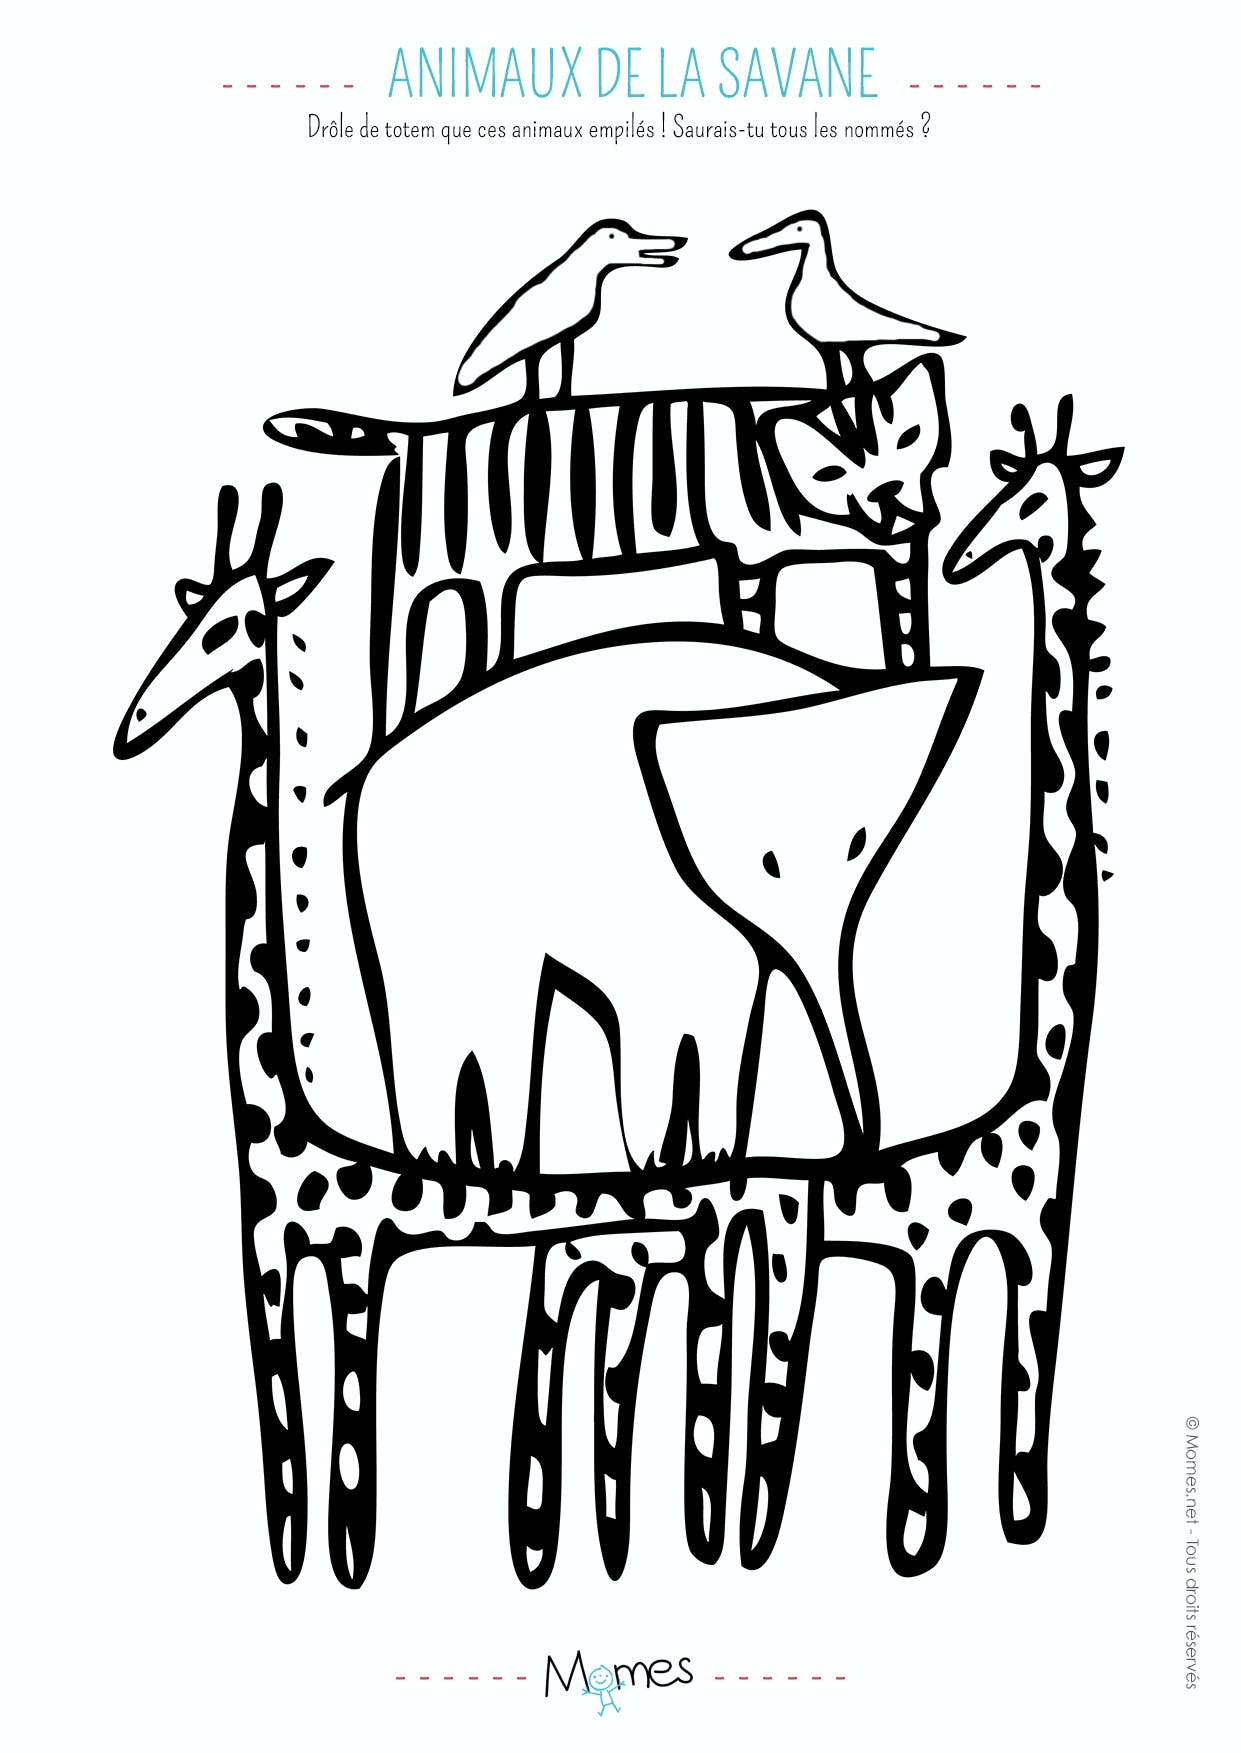 Coloriages animaux de la savane - Coloriages a colorier ...